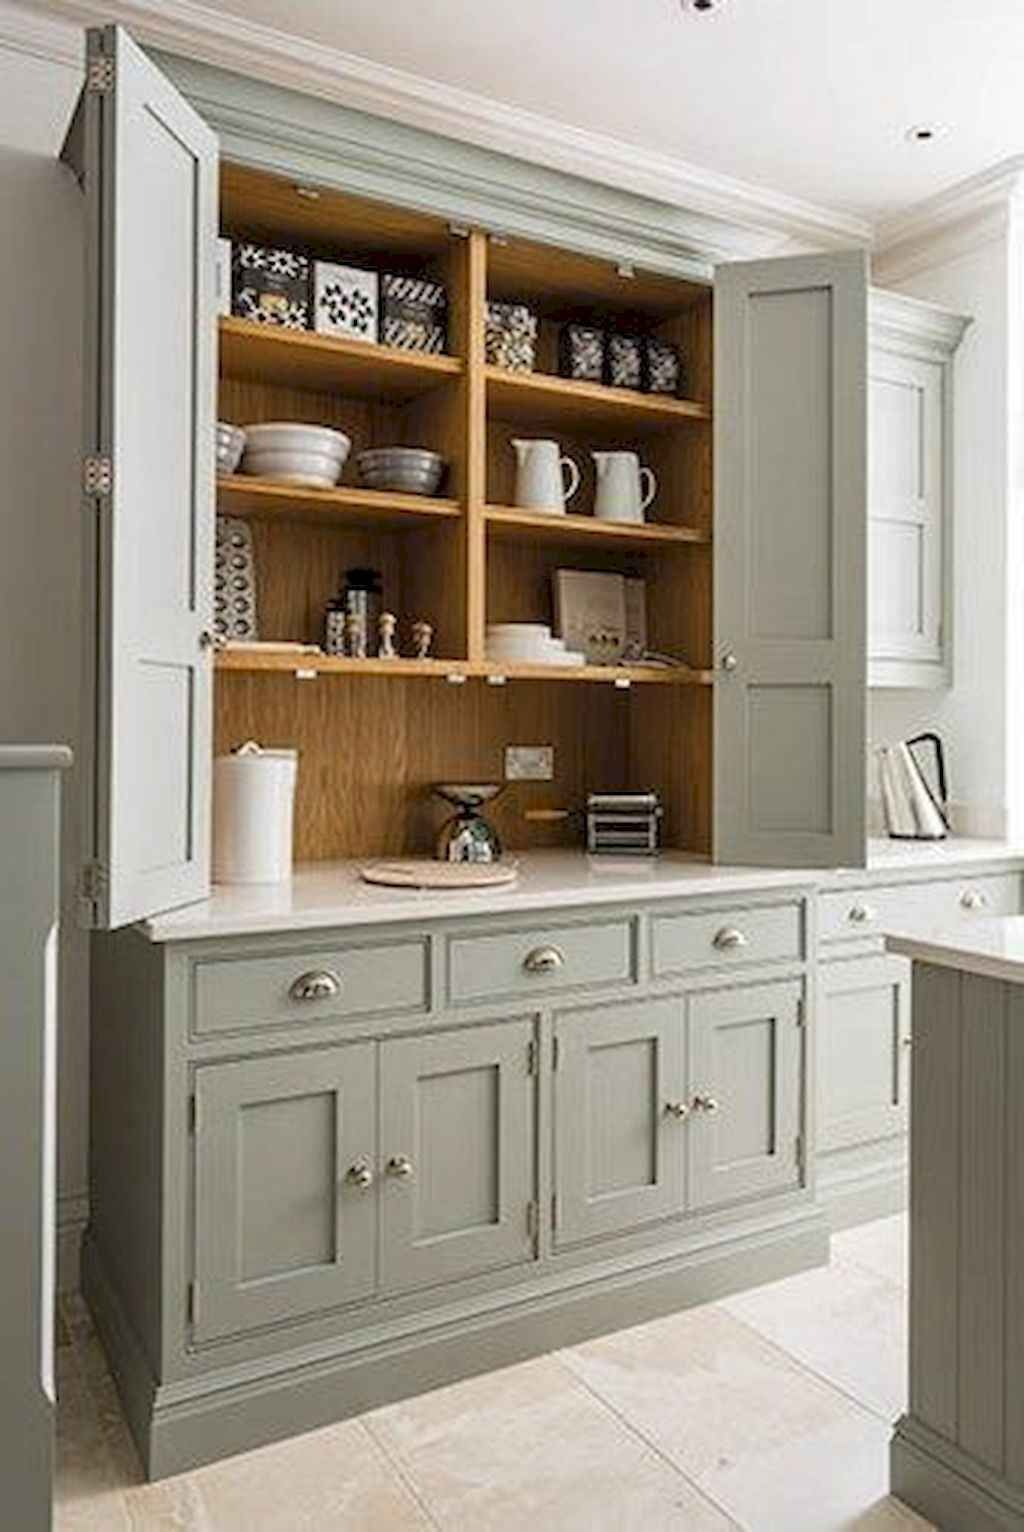 awesome 70 smart small kitchen organization decor ideas source link https decortutor in on kitchen organization for small spaces id=44397